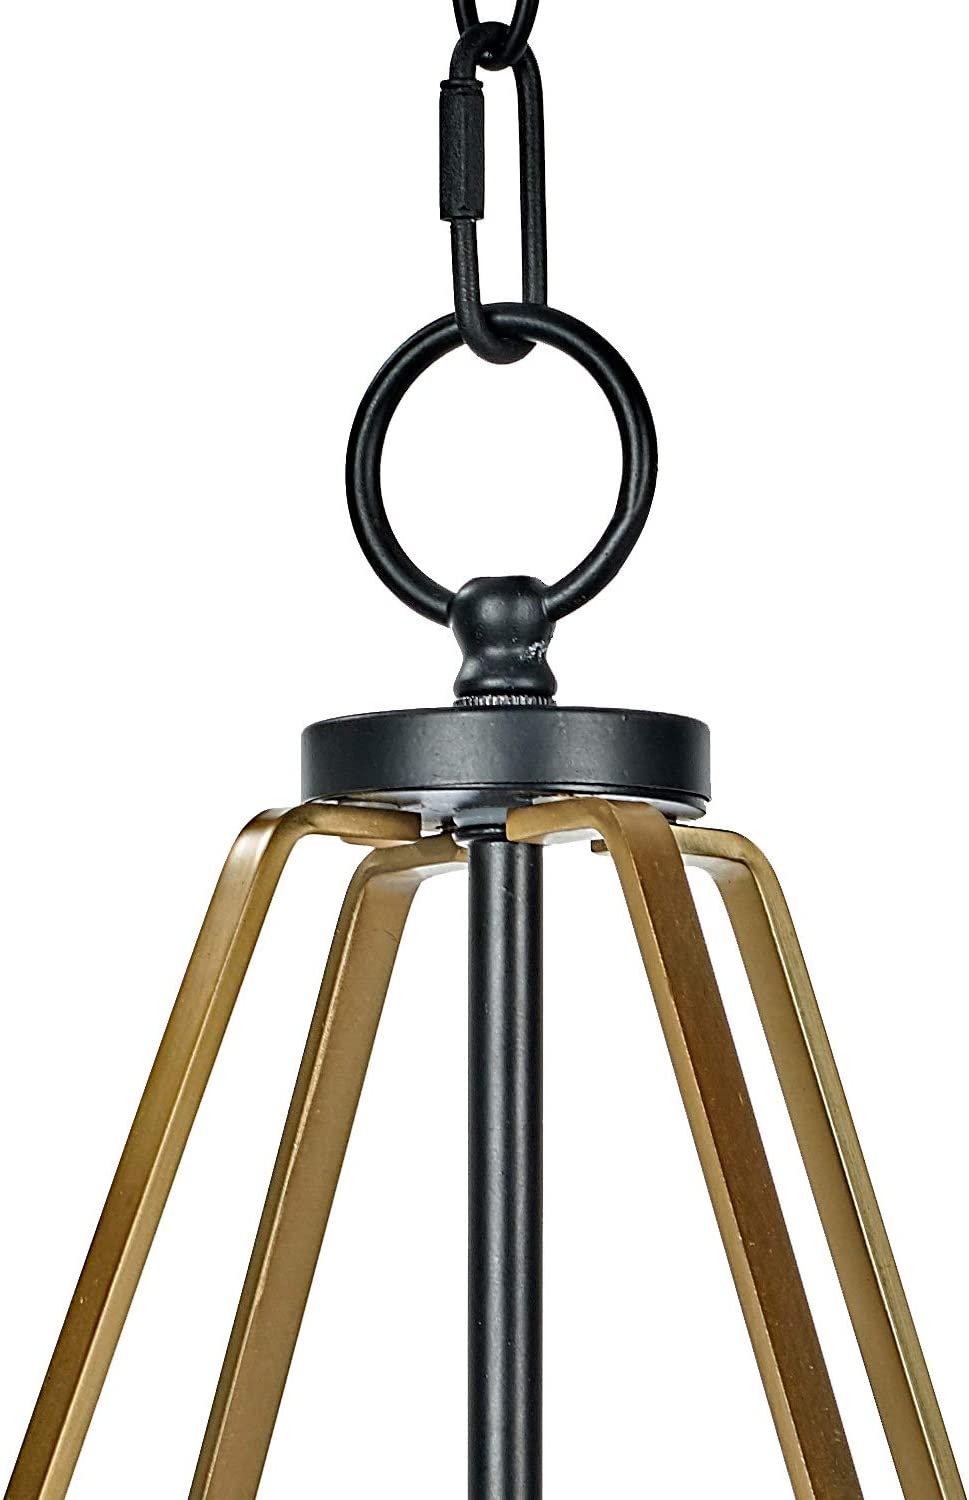 "MOTINI Ceiling Pendant Fixtures Lamp Industrial Metal Pendant Light, Hanging Cage Globe Ceiling Light for Kitchen Island Dining Room Farmhouse Entryway Foyer, 21""x13.5""x13.5"" - -"